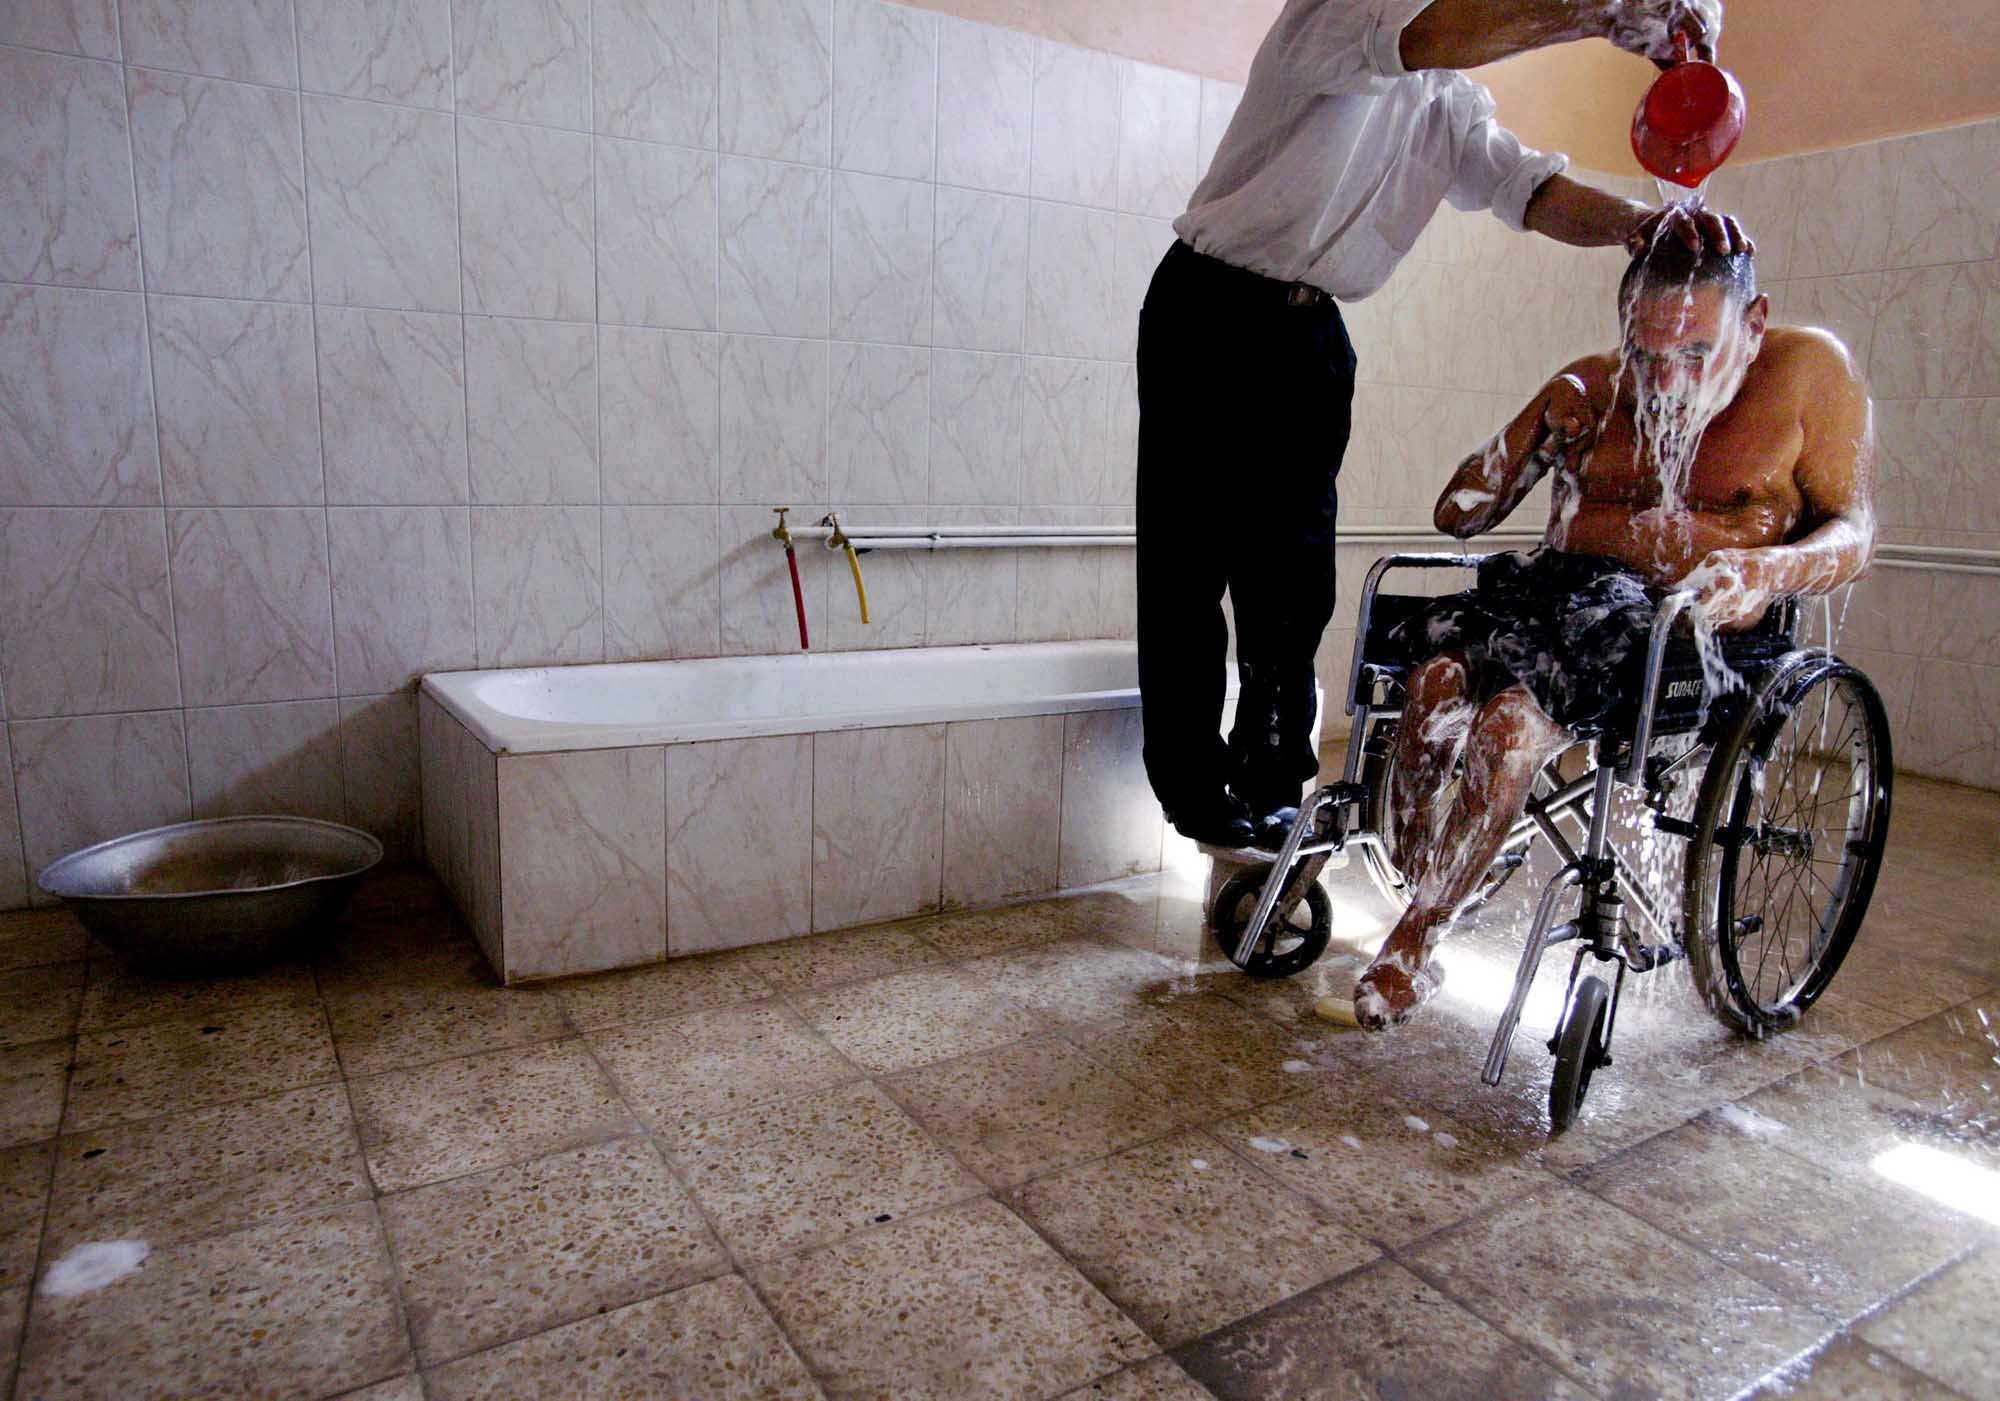 Abass Chechan, 33, left, gives a bath to Hamza Saheb, 65. Chechan worked as a private in the old Iraqi army. {quote}When I see patients who are dirty, I feel it is my duty to help them,{quote} said Chechan.